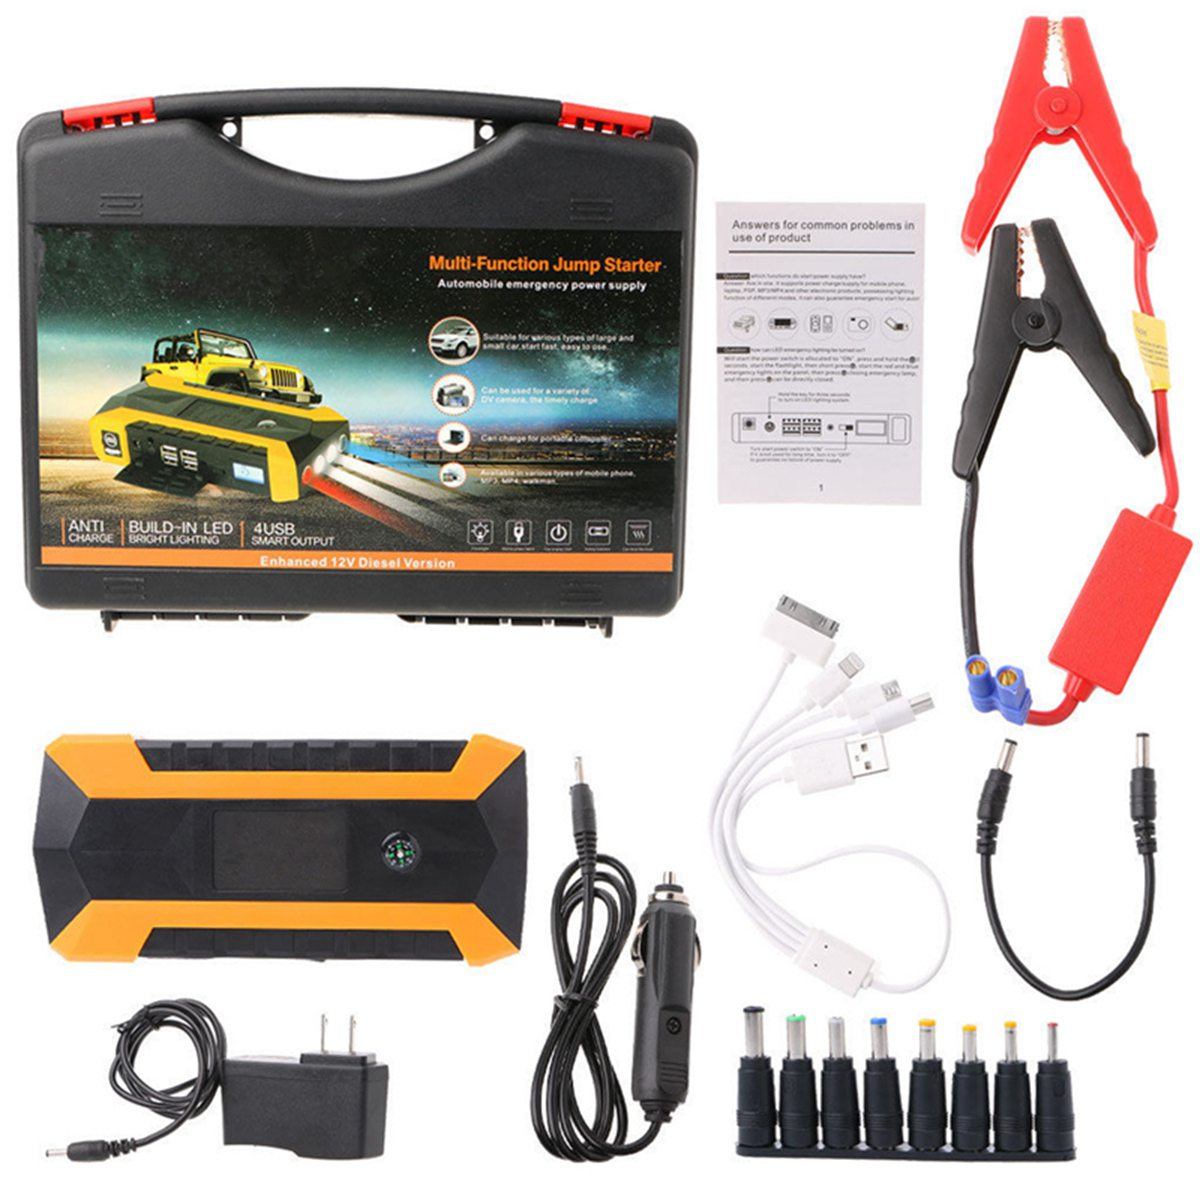 89800mAh Car Jump Starter 12V 4USB 600A Portable Car Battery Booster Charger Booster Power Bank Starting Device Car Starter 89800mah led emergency car jump starter 12v 4usb charger battery power bank portable car battery booster charger starting device